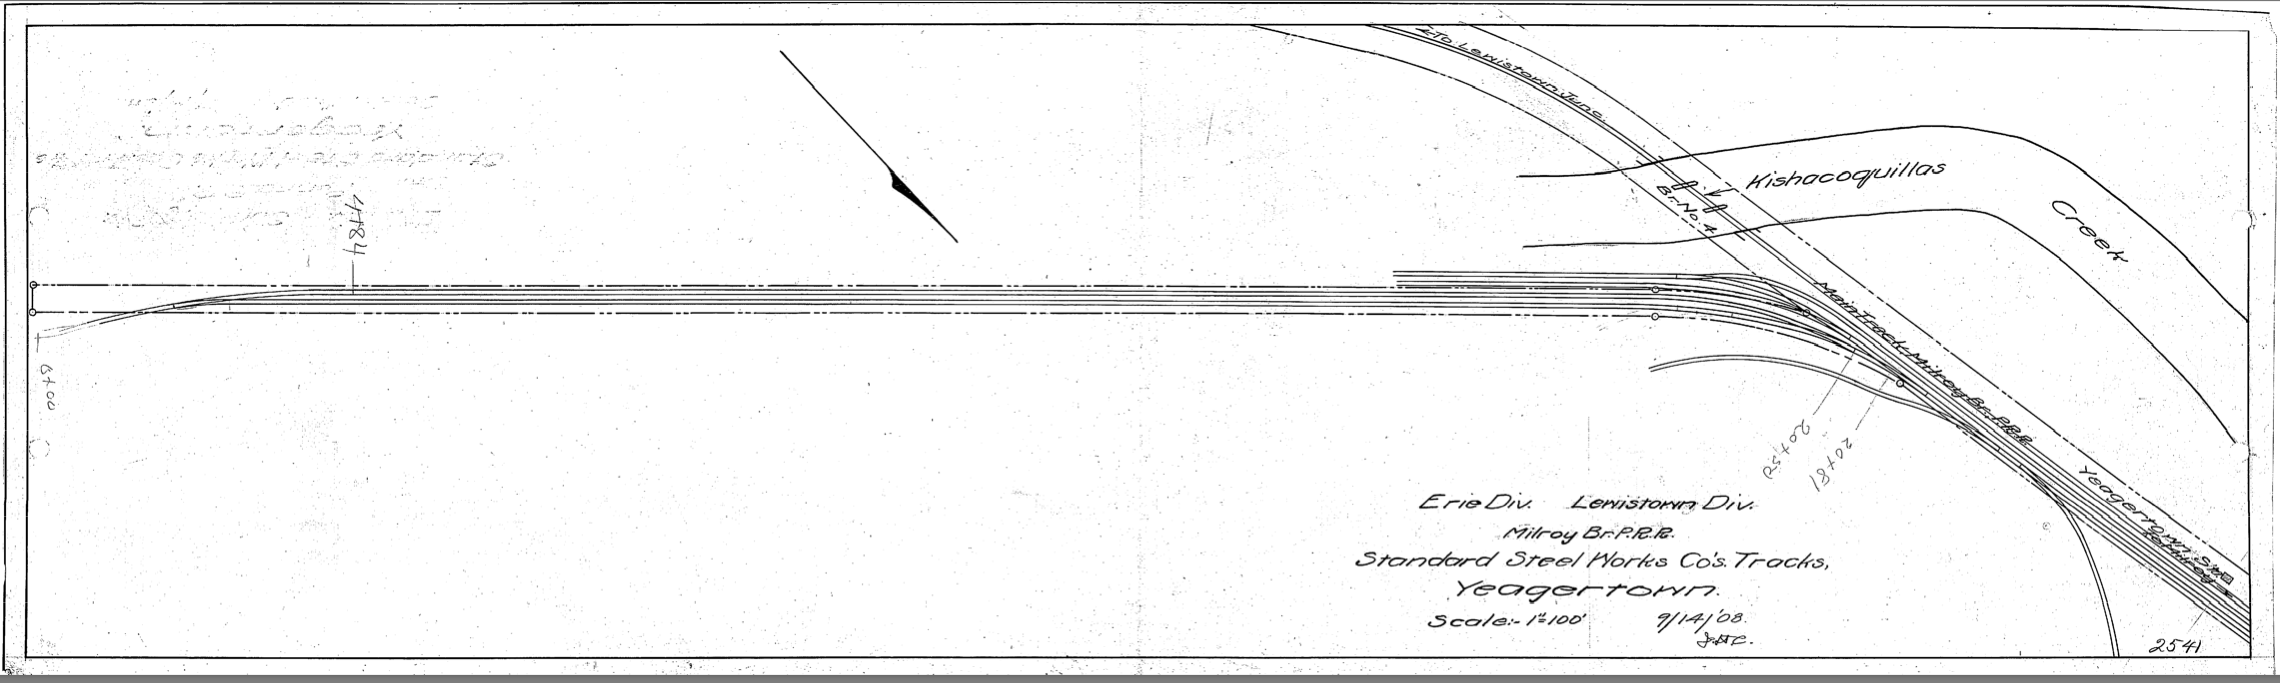 1908 Track Diagram of Standard Steel